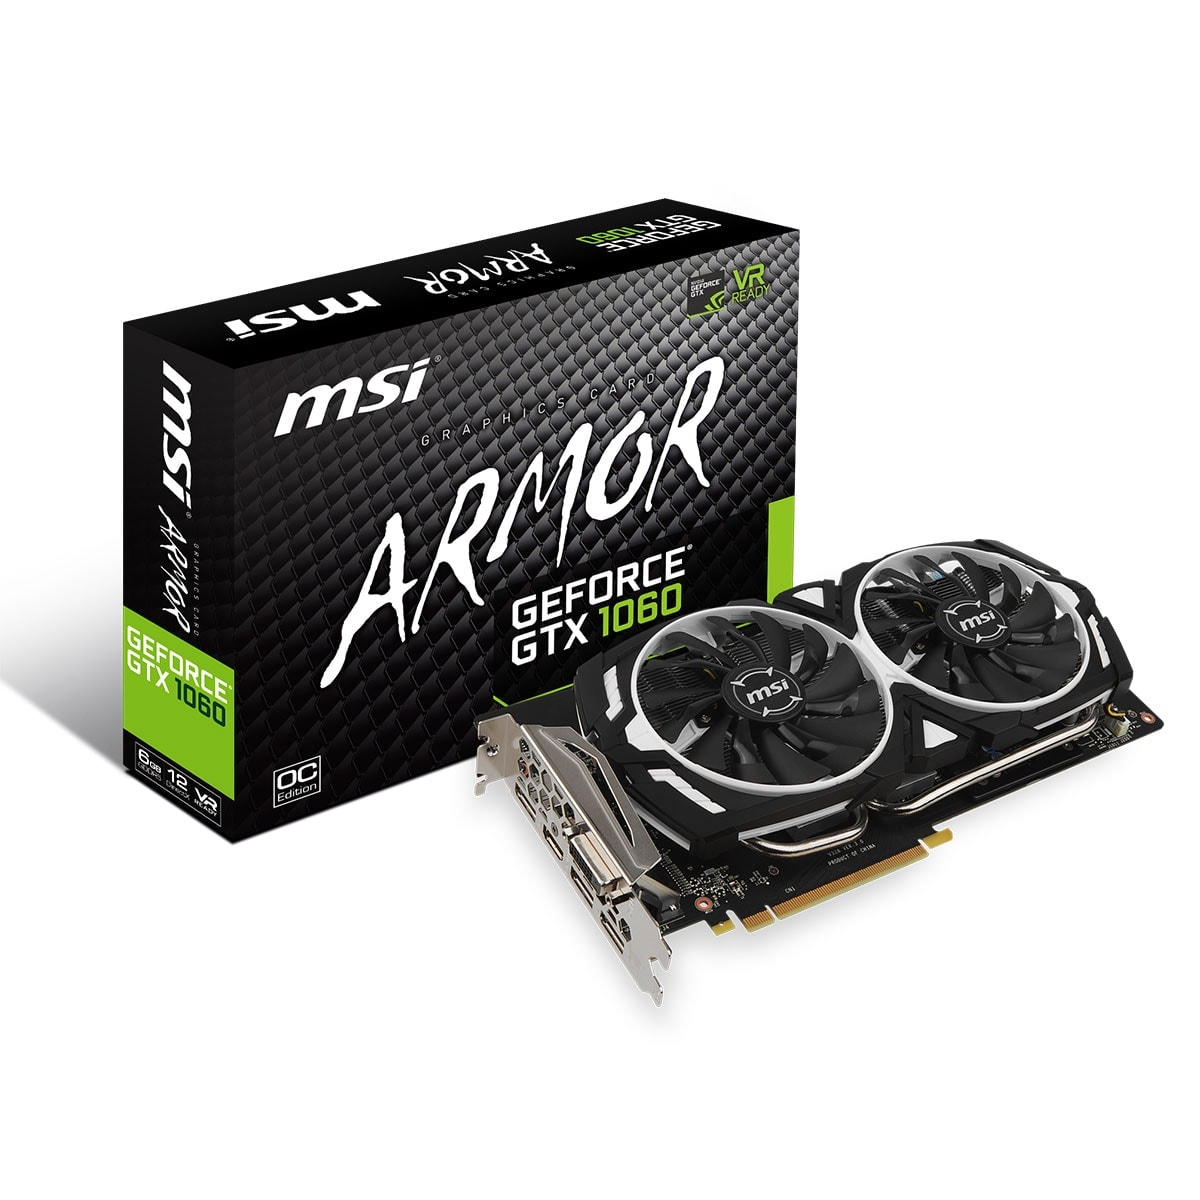 GF GTX 1060 ARMOR 6GB + SSD 240G Kingston offert - Cybertek.fr - 1